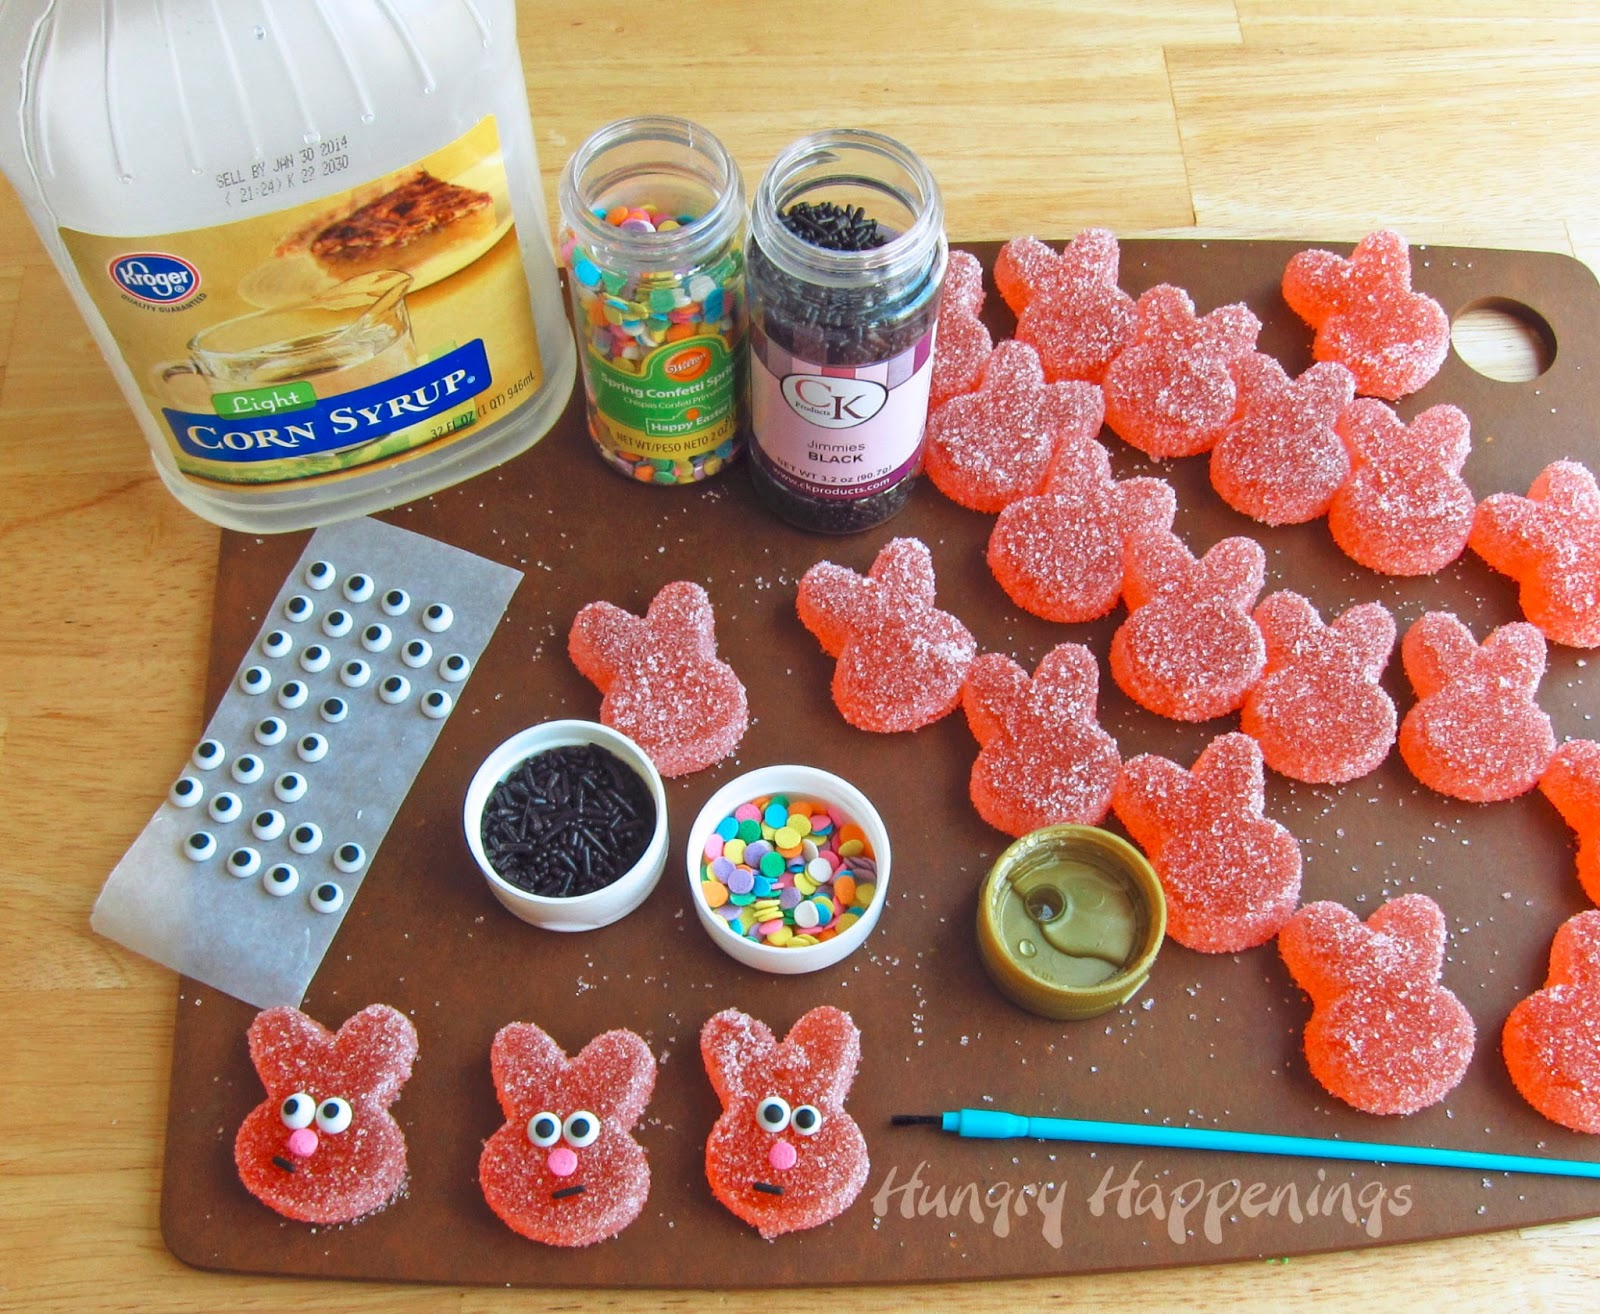 Making Easter candy doesn't have to be difficult. All it takes is a little imagination to turn pretzels into duck- and bunny-shaped Easter candies. Get the recipe at One Little Project.